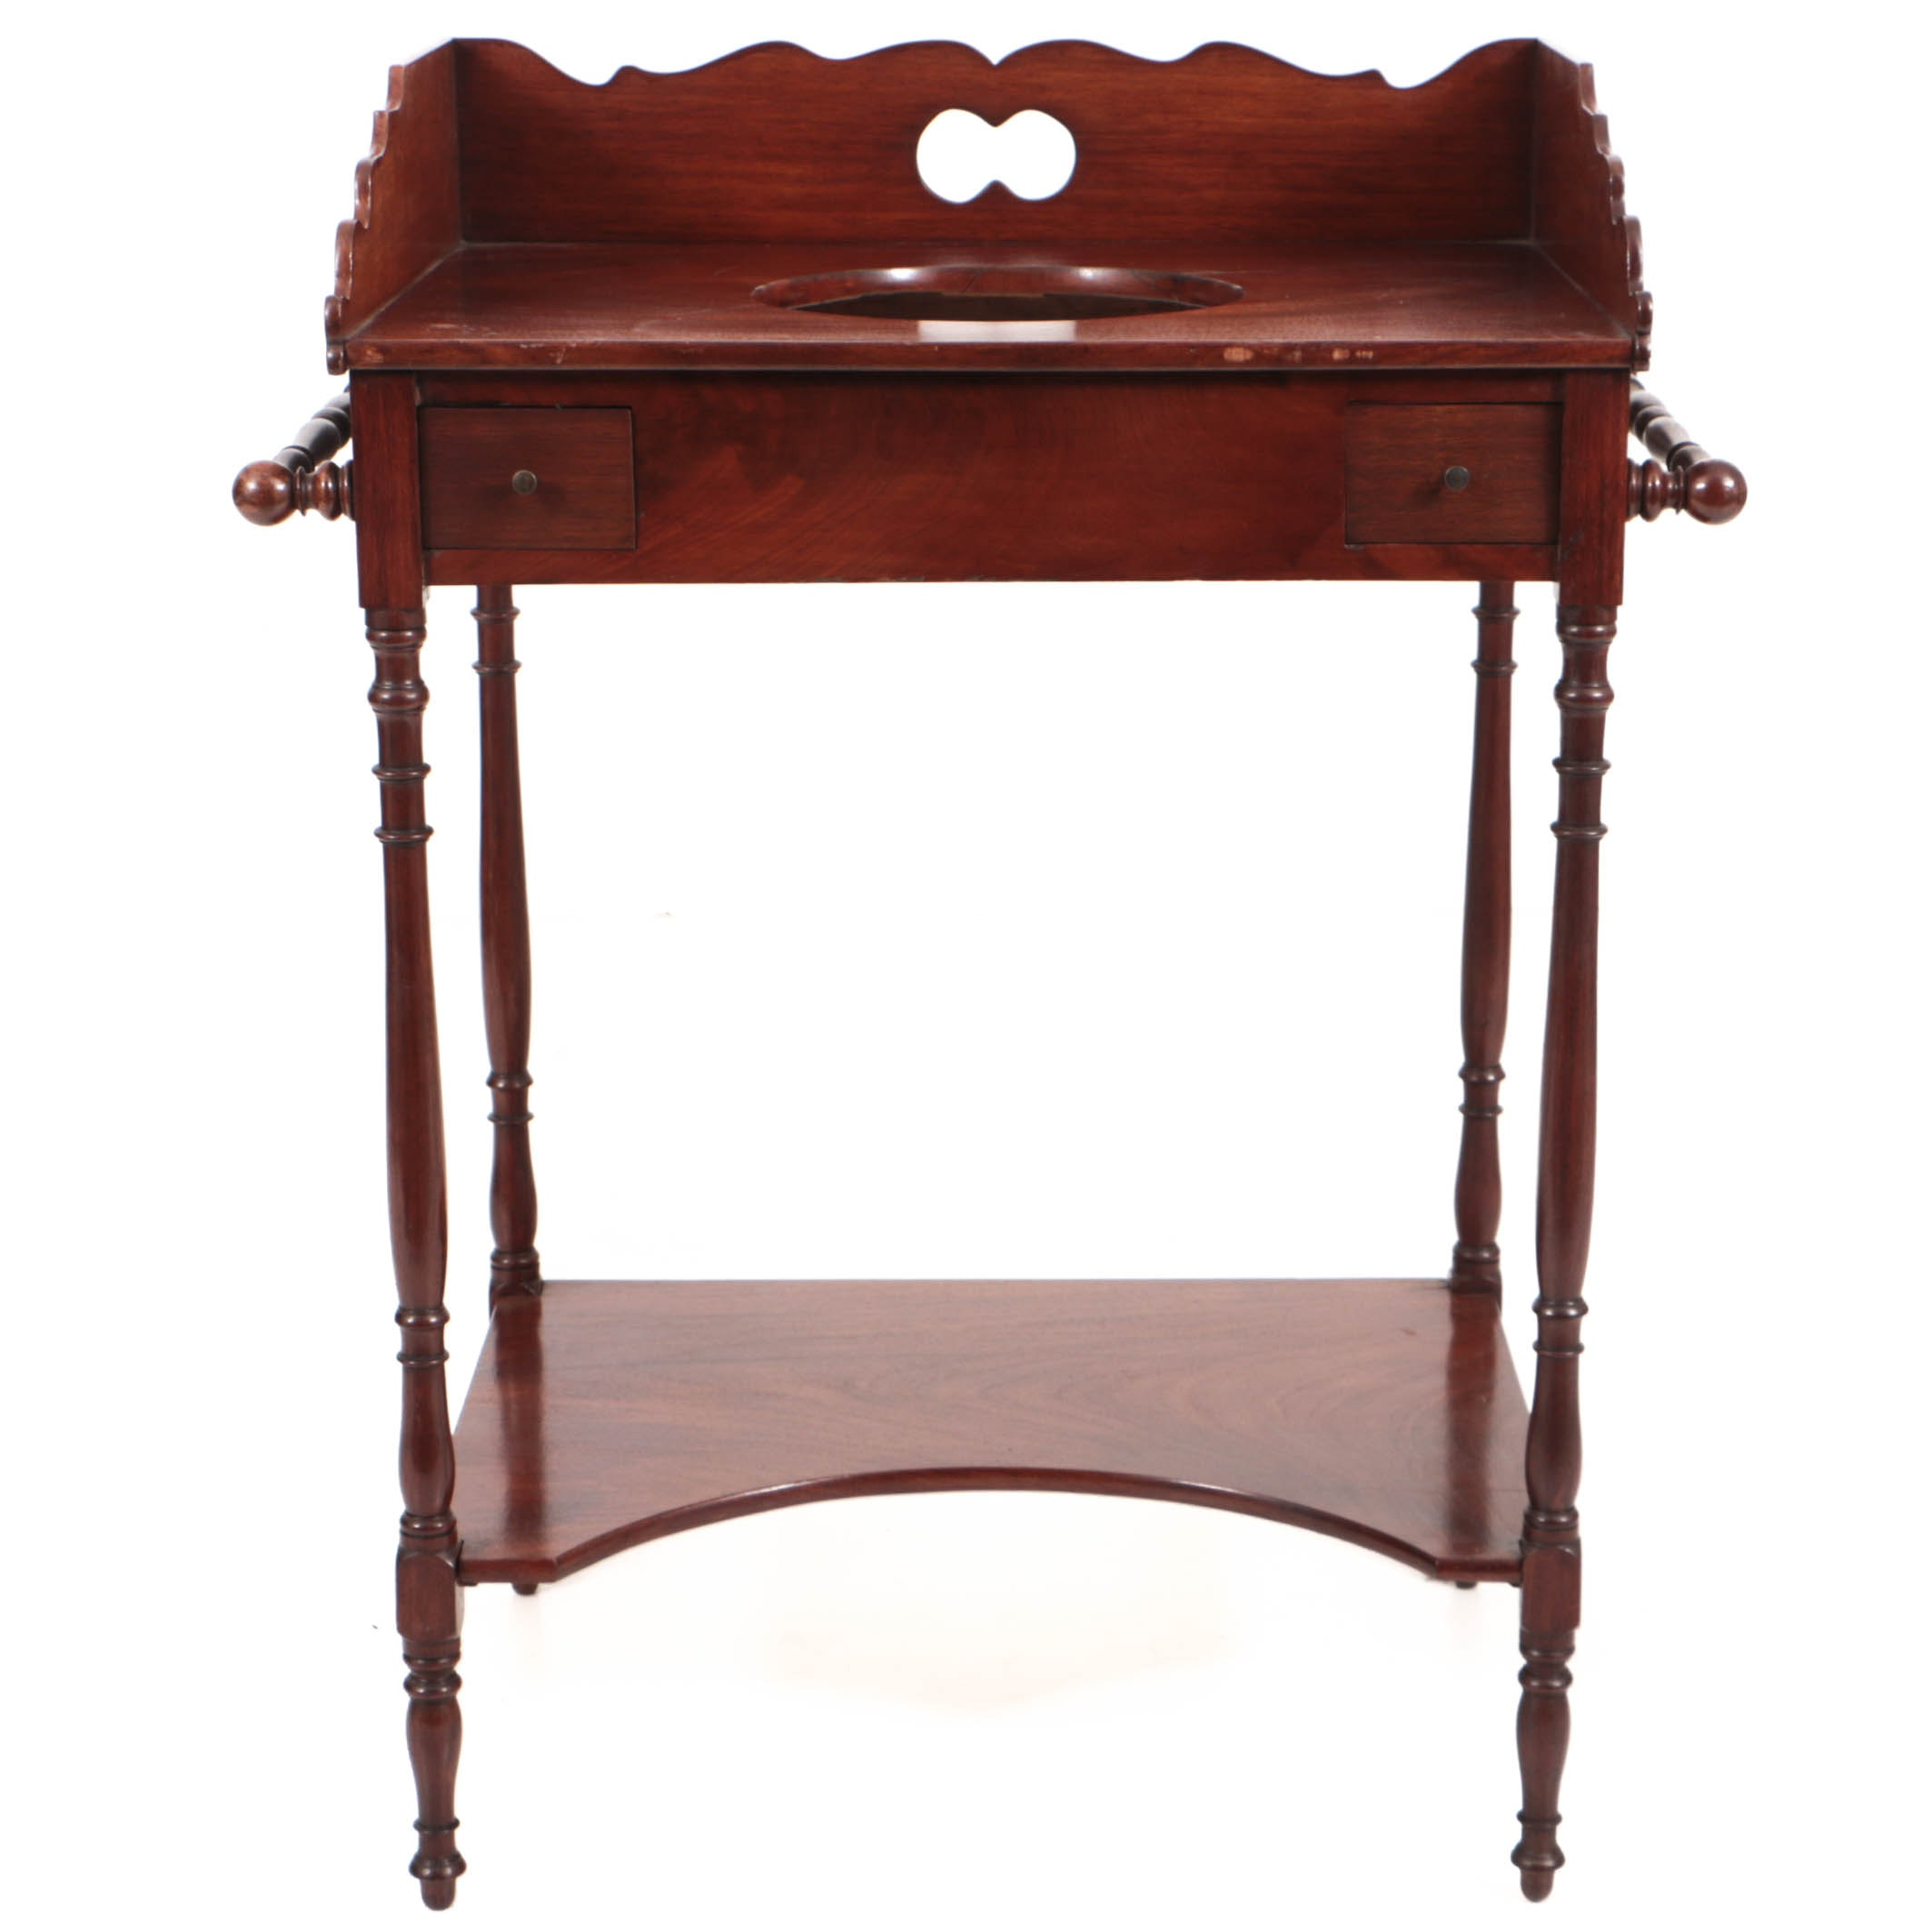 Antique Early Victorian Mahogany Two-Tier Washstand